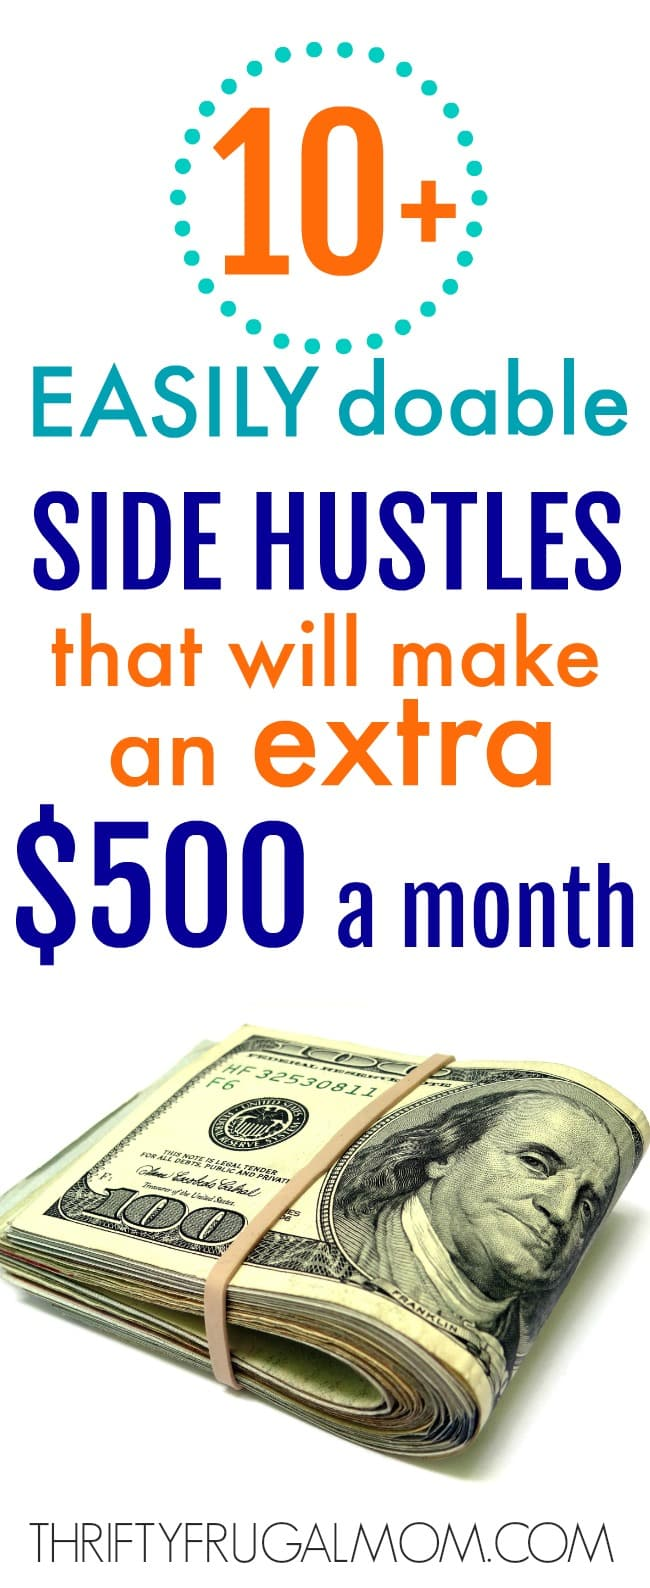 Trying to earn extra money? These easily doable side hustle ideas will help you out! By doing just one or two you should be able to earn an extra $500 a month.